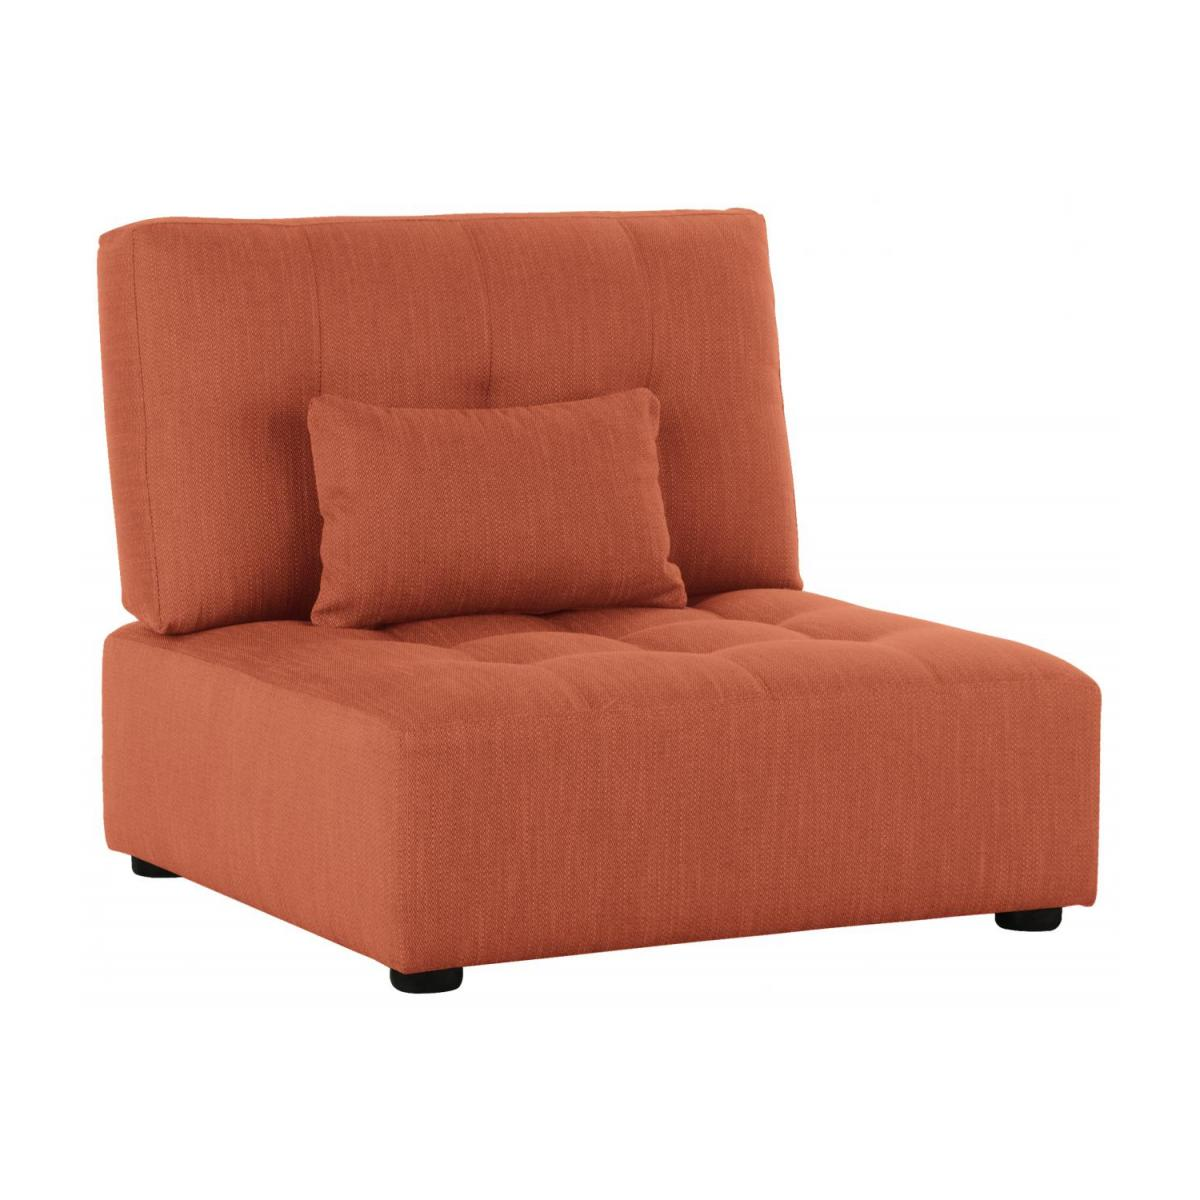 Sitzelement aus Stoff, orange n°1